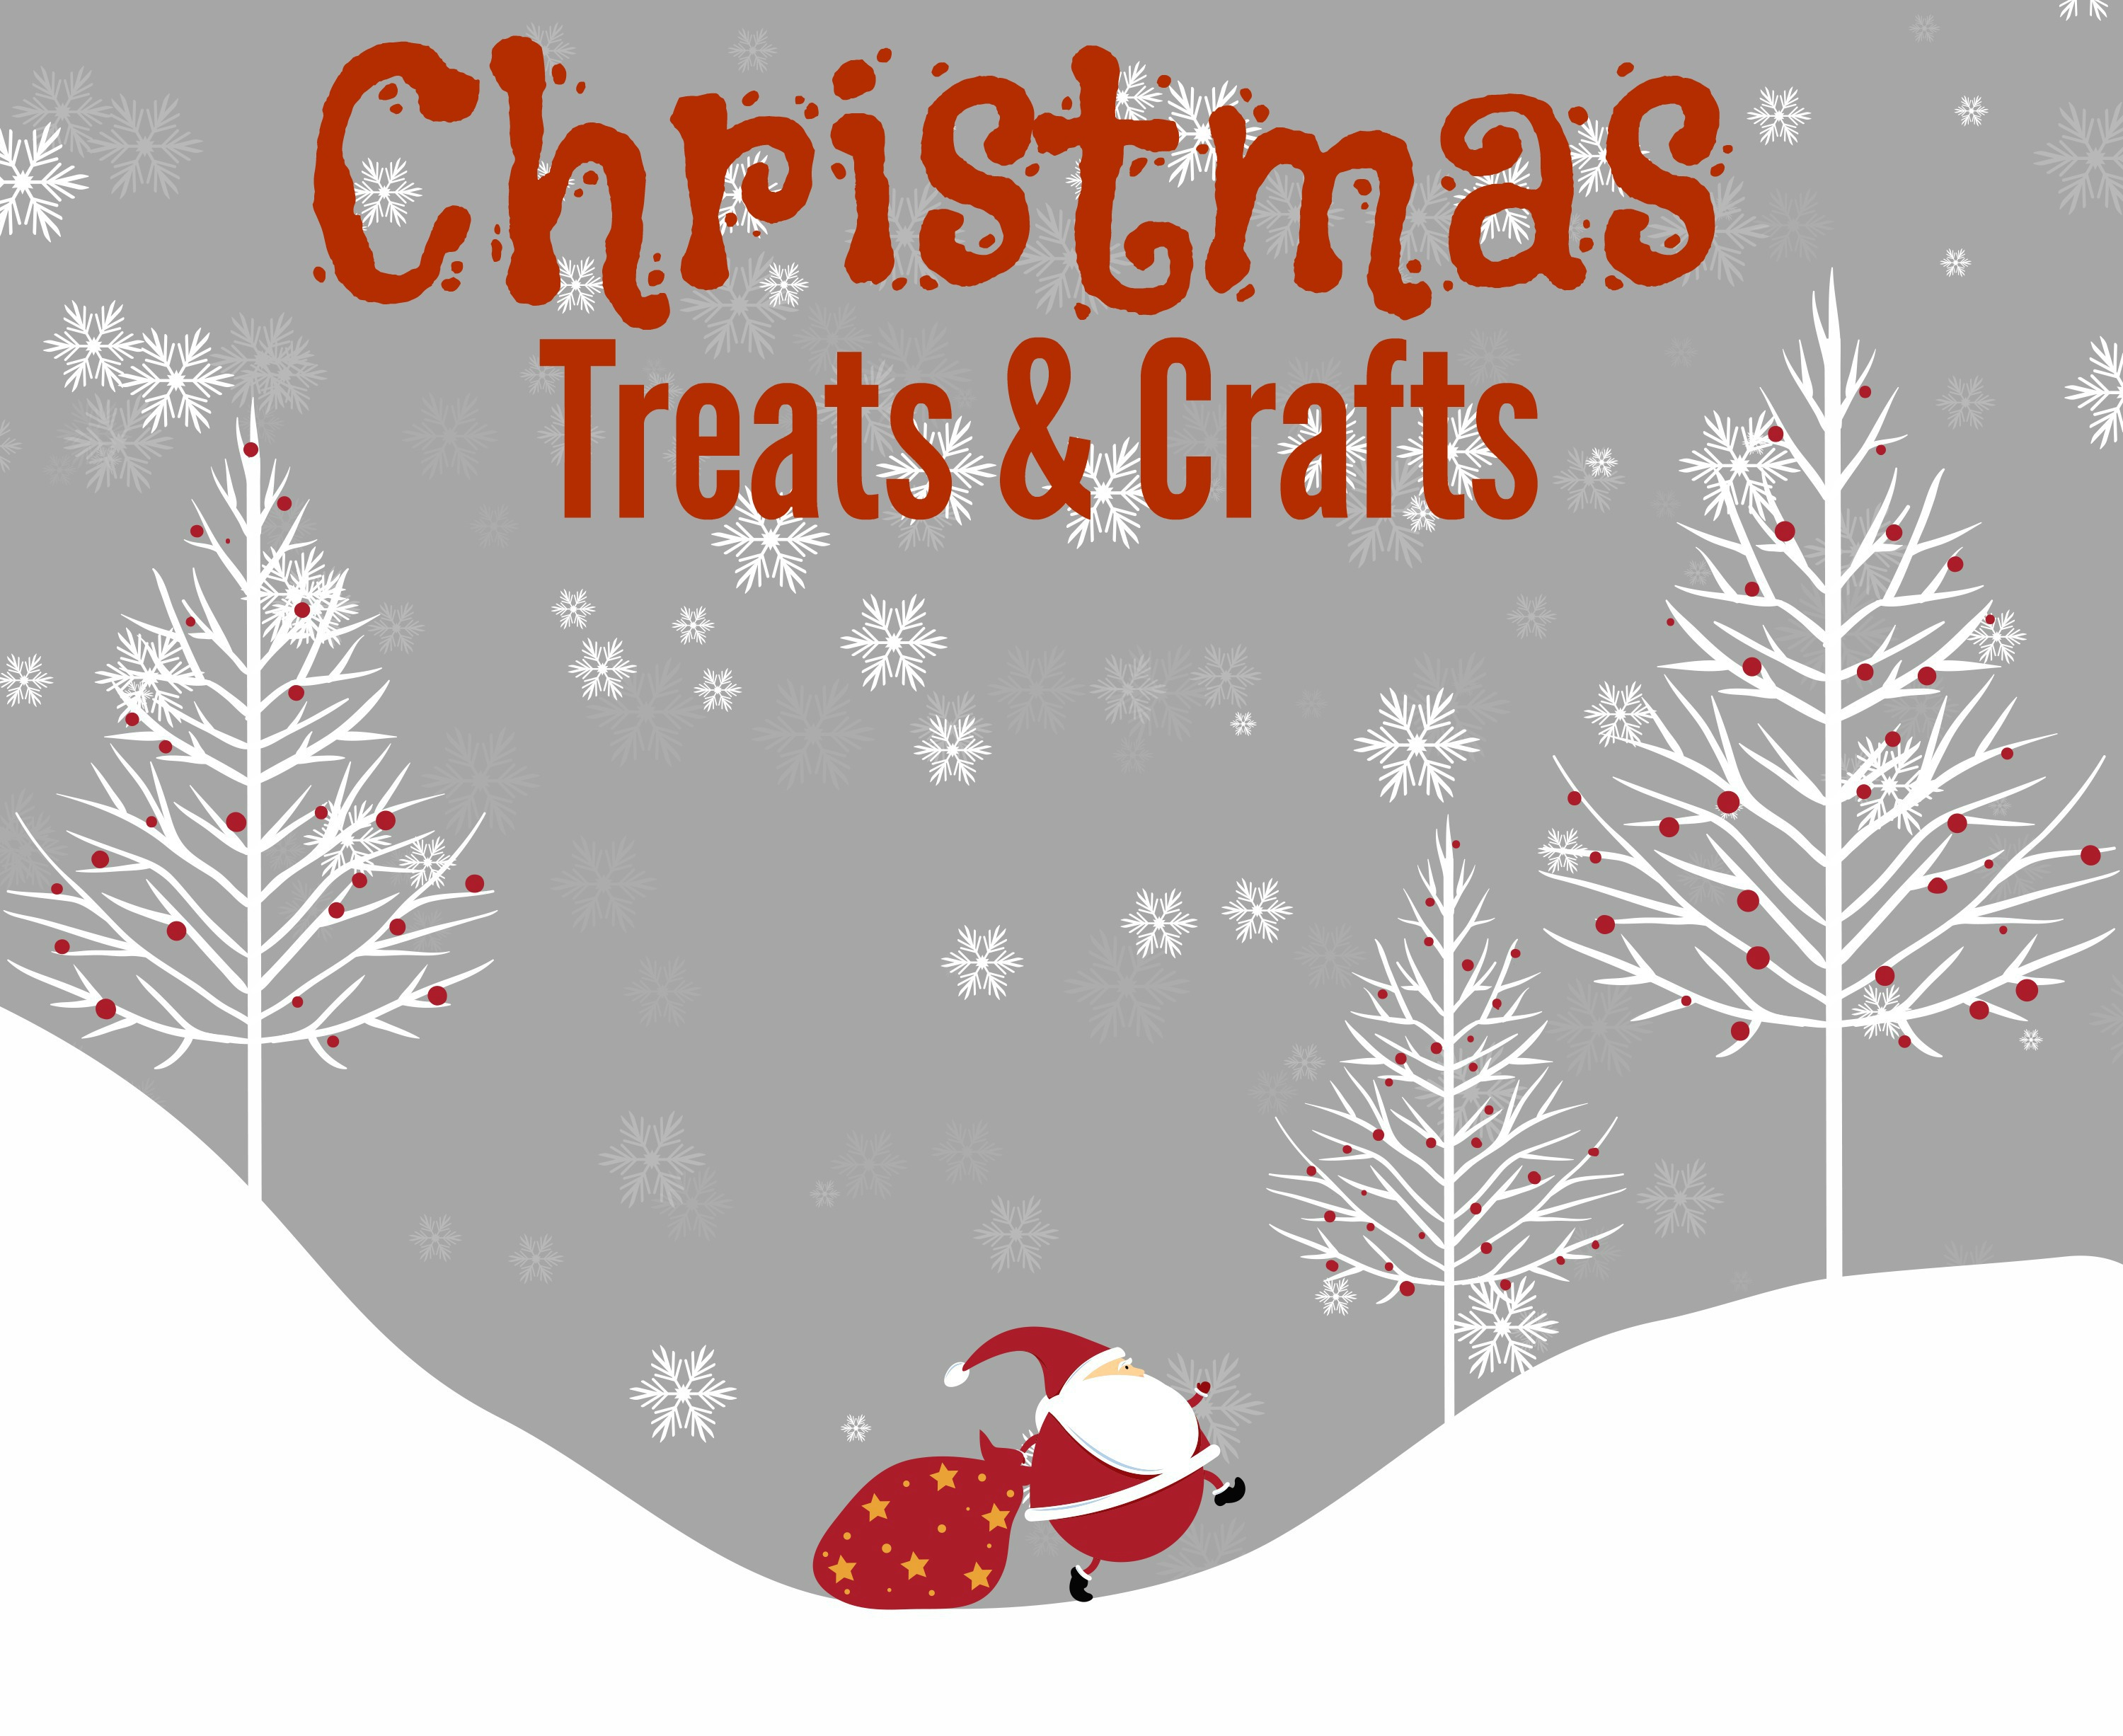 Here are some quick and easy Christmas treats and crafts.